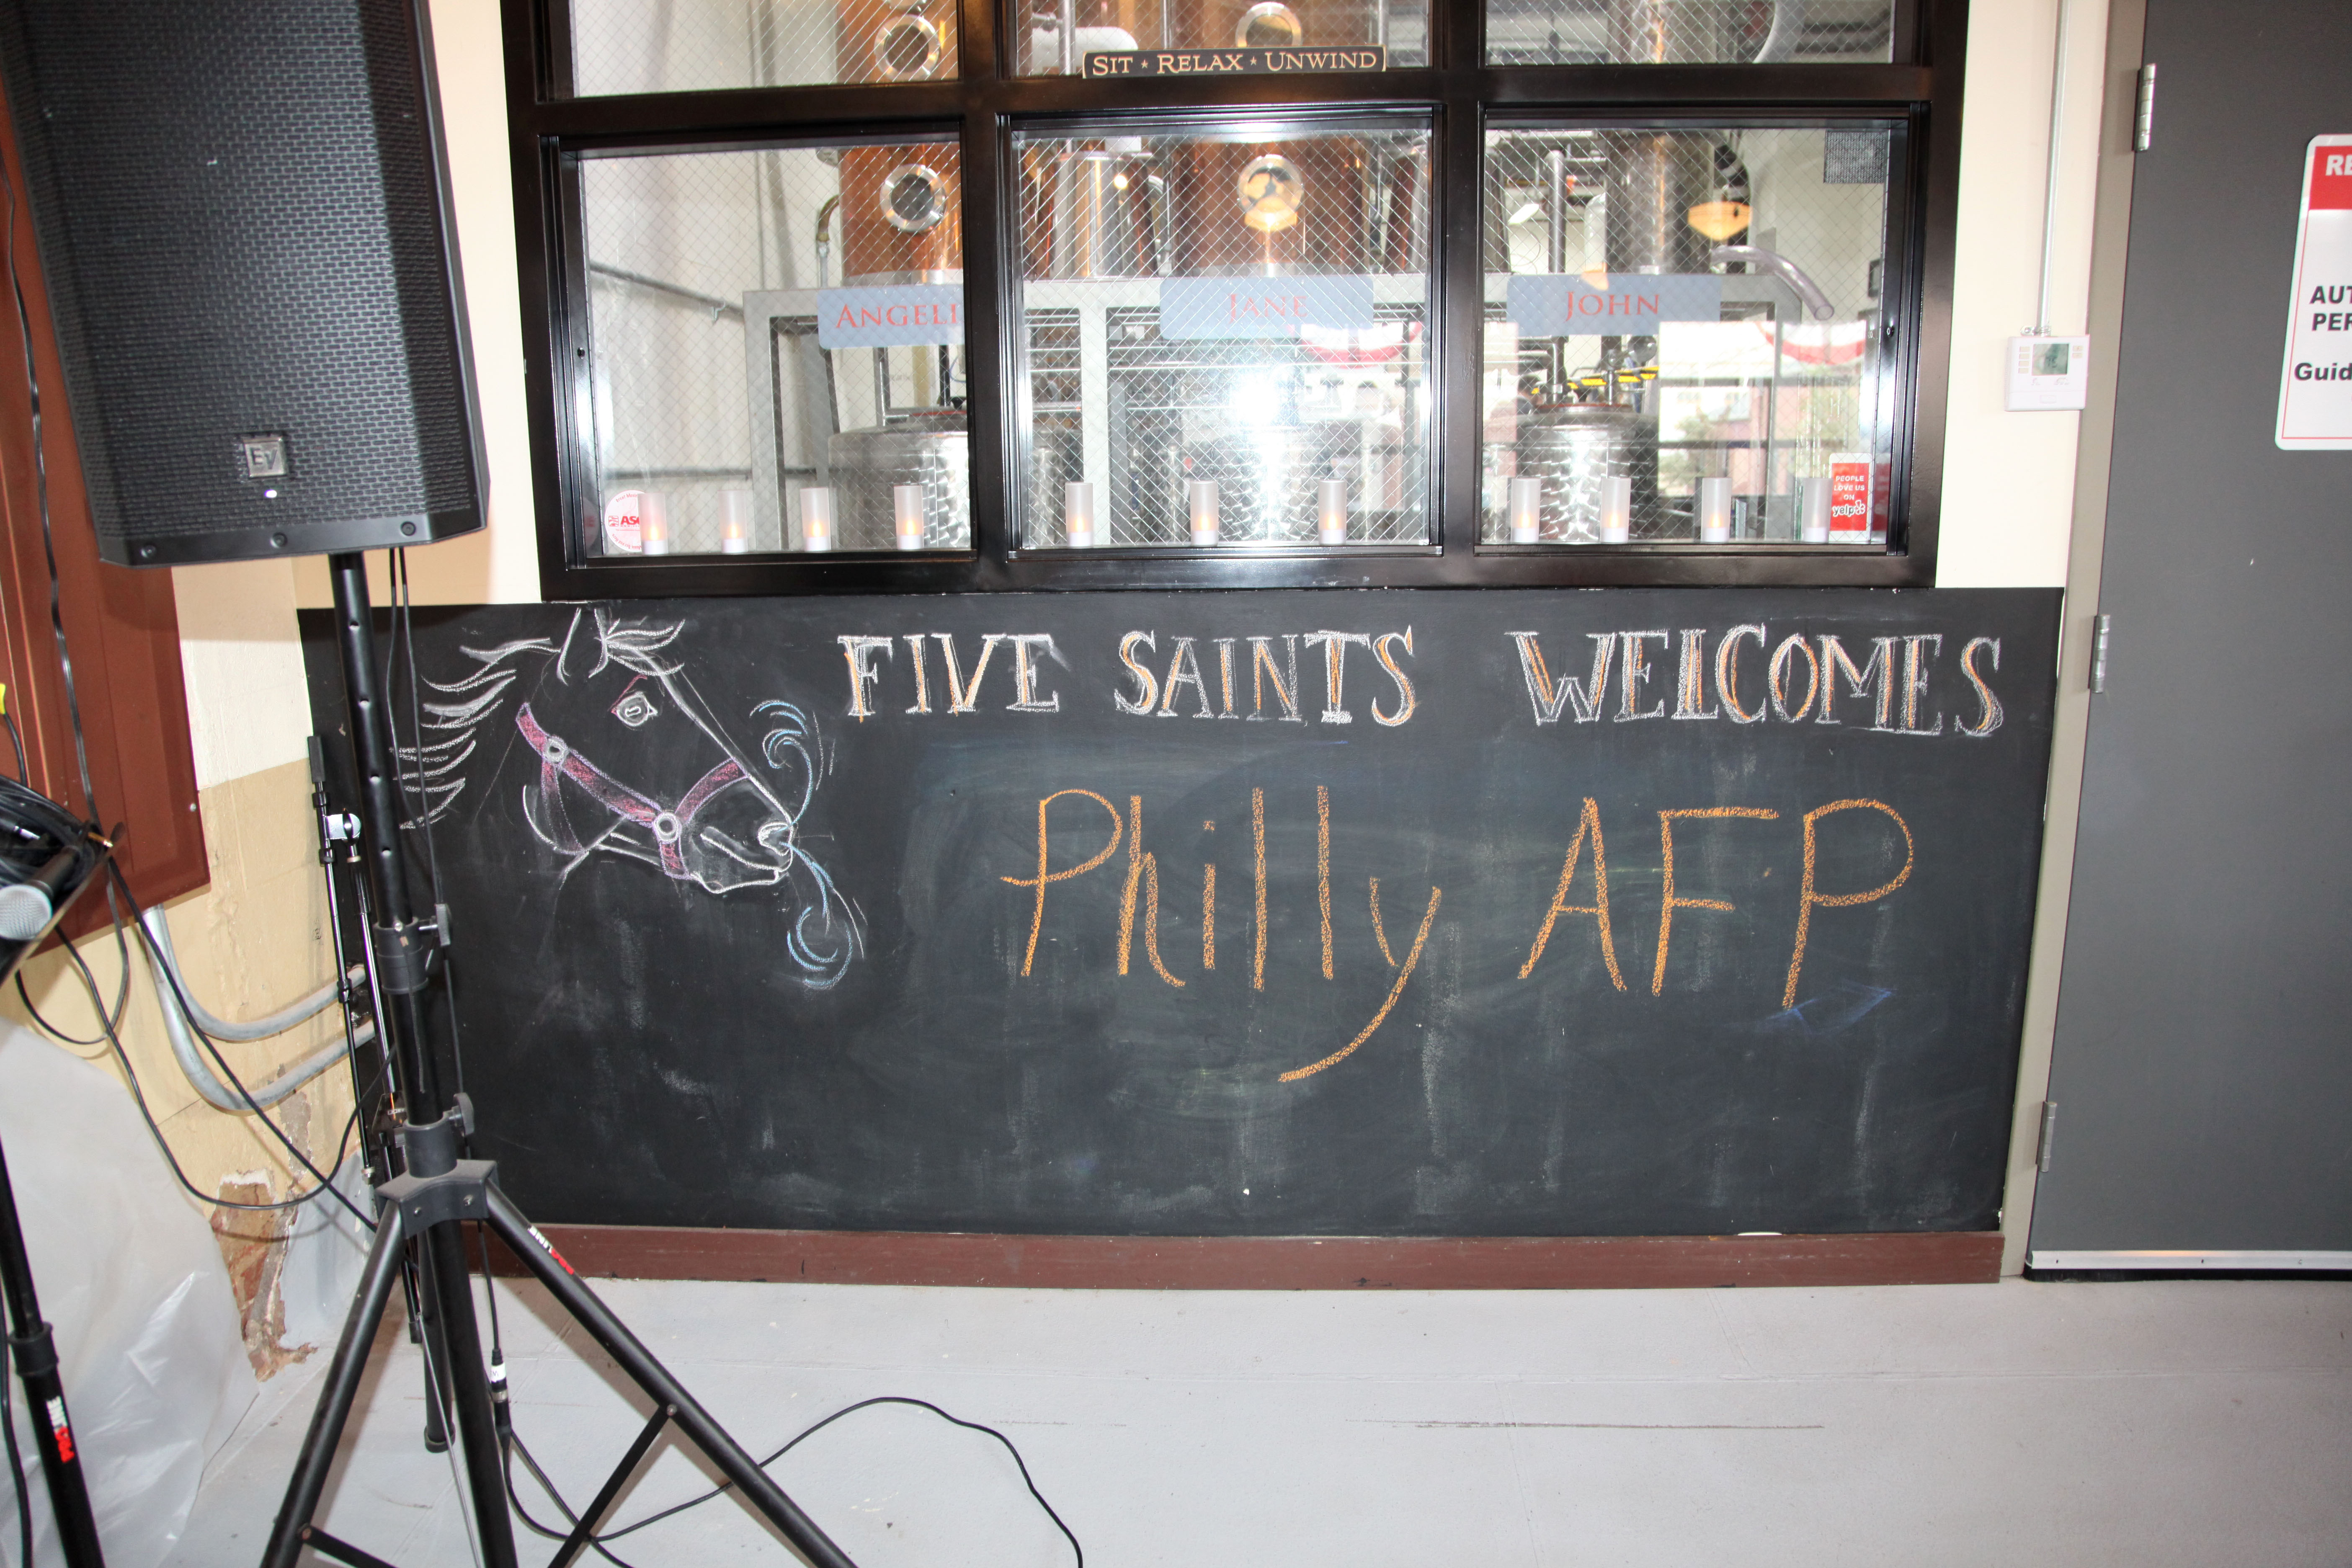 Welcome Philly AFP